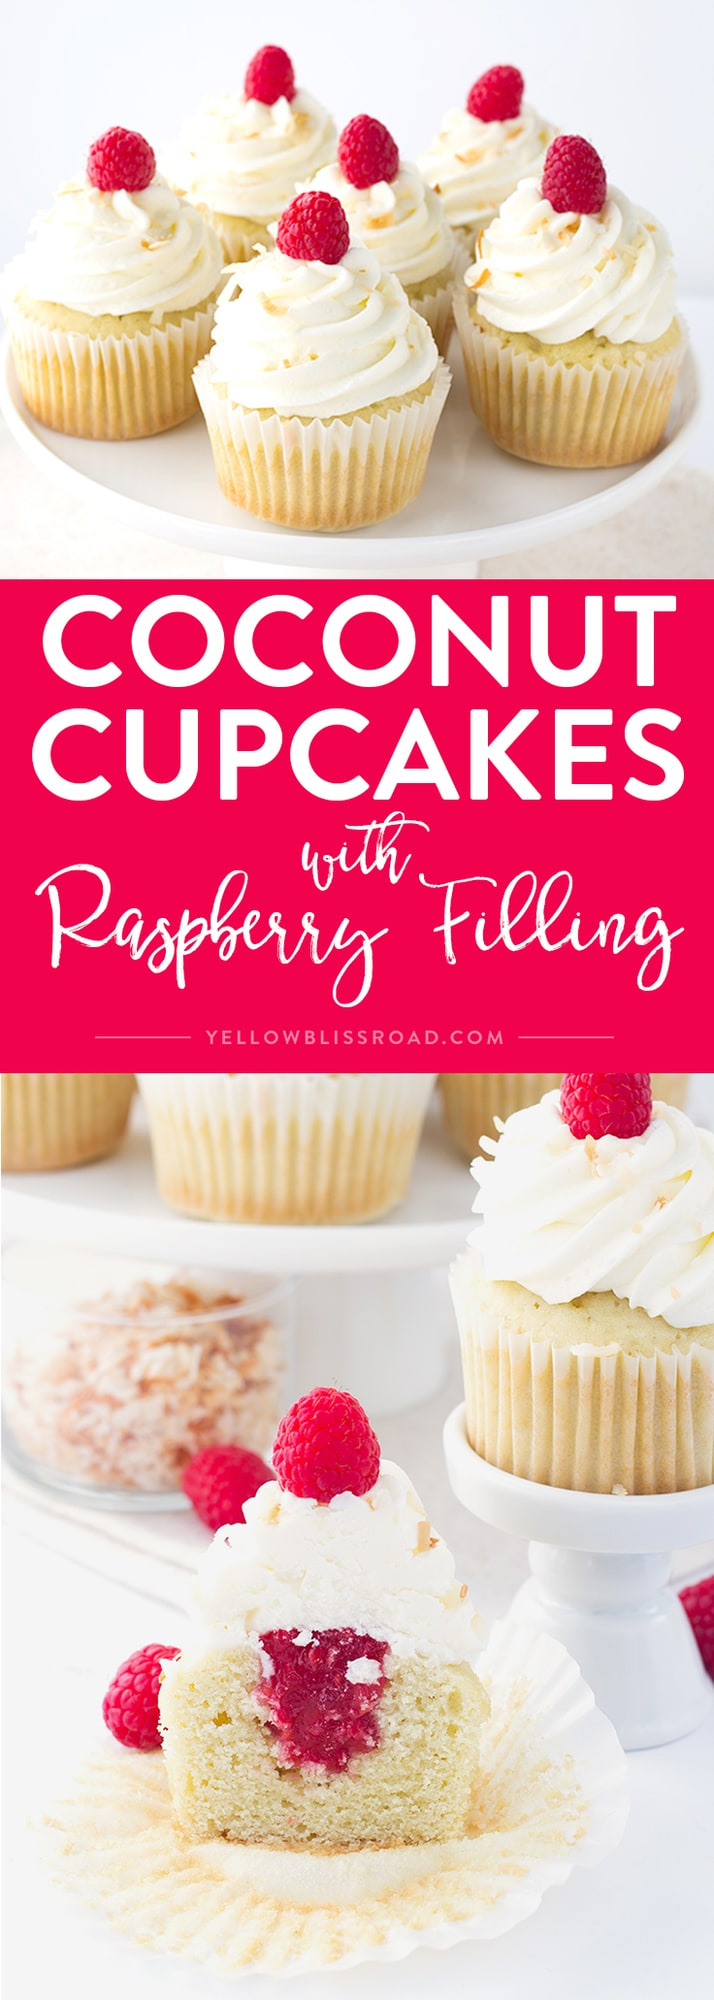 Social media image of Coconut Cupcakes with Raspberry Filling